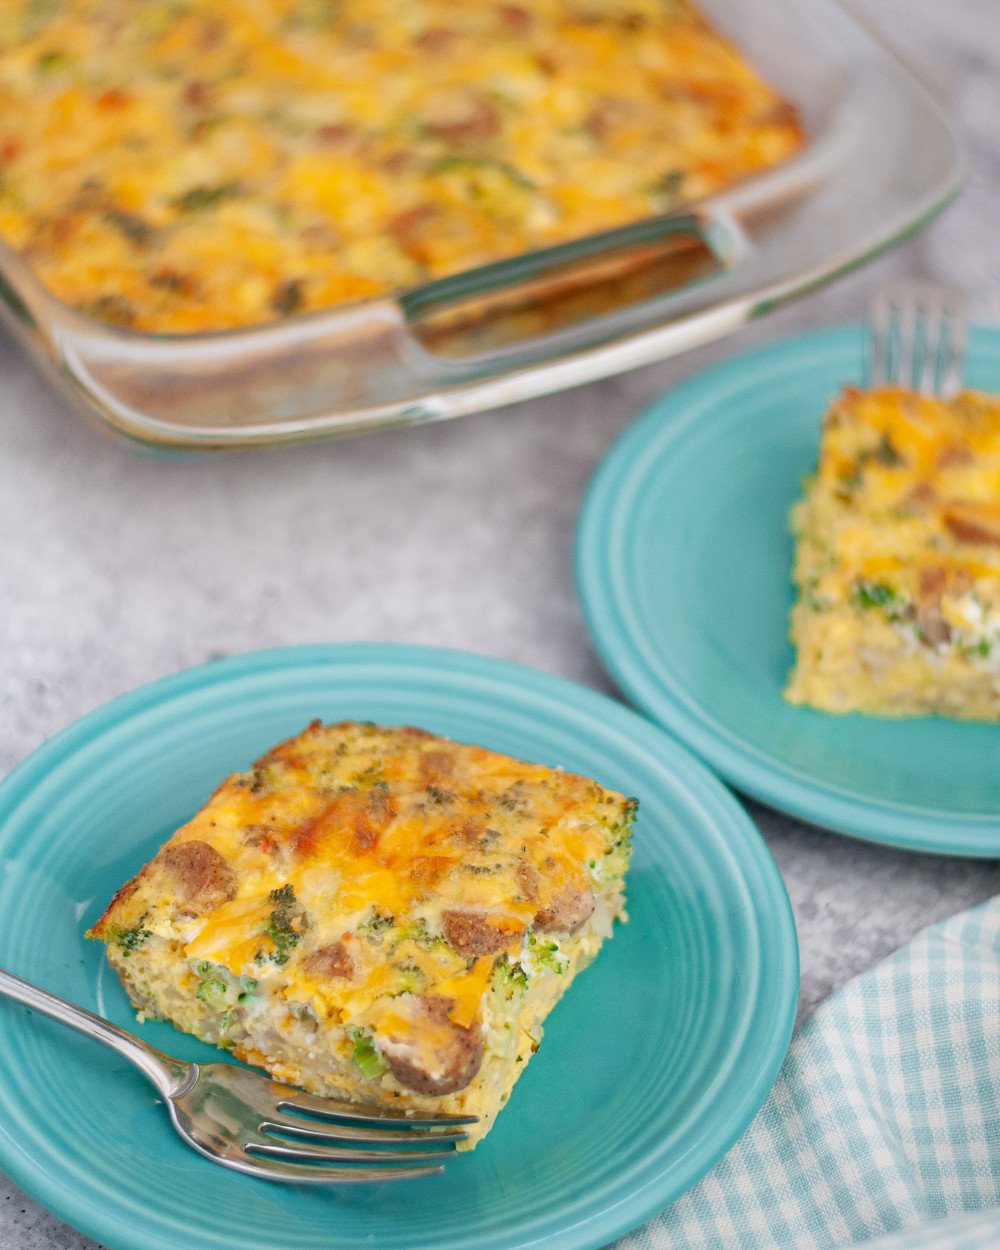 Another view of this easy breakfast casserole recipe, showing the pan next to two plates with slices of egg bake ready to eat